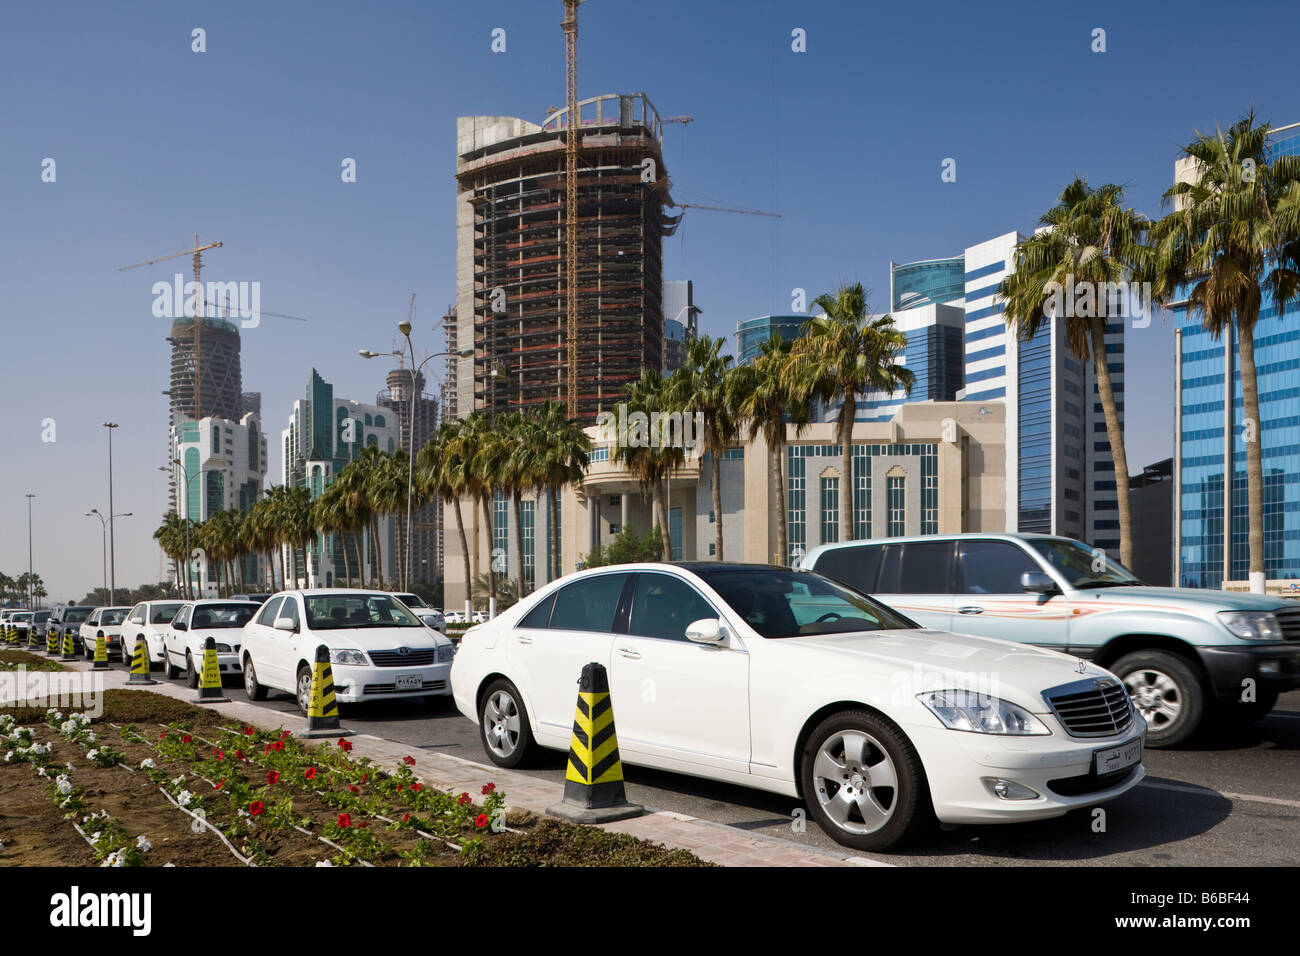 traffic and construction of highrise buildings in Doha, Qatar - Stock Image